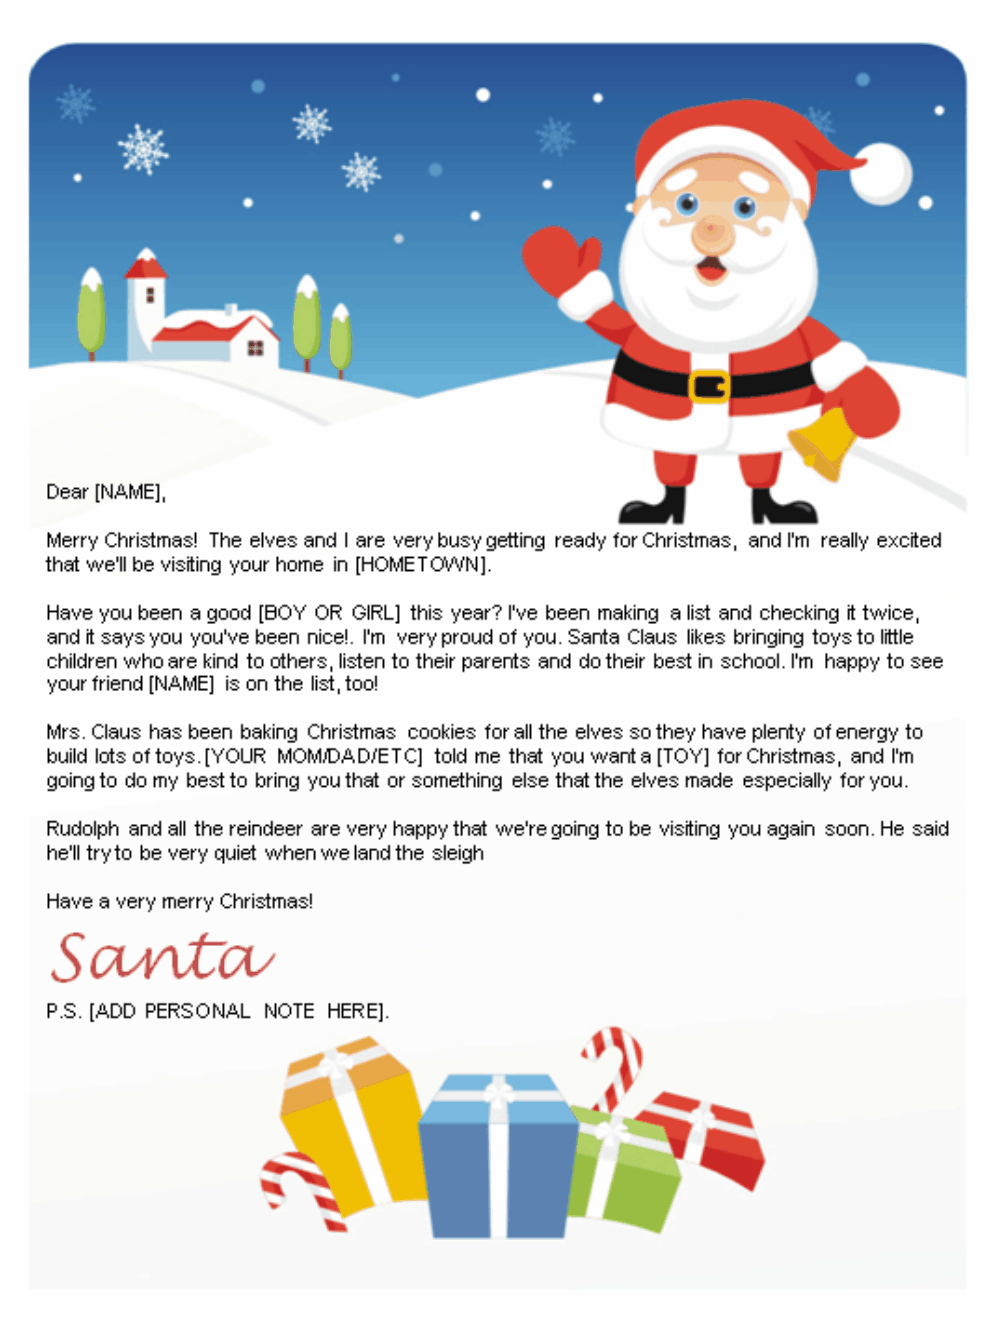 Free Letters From Santa | Santa Letters To Print At Home - Gifts - Free Printable Letter From Santa Template